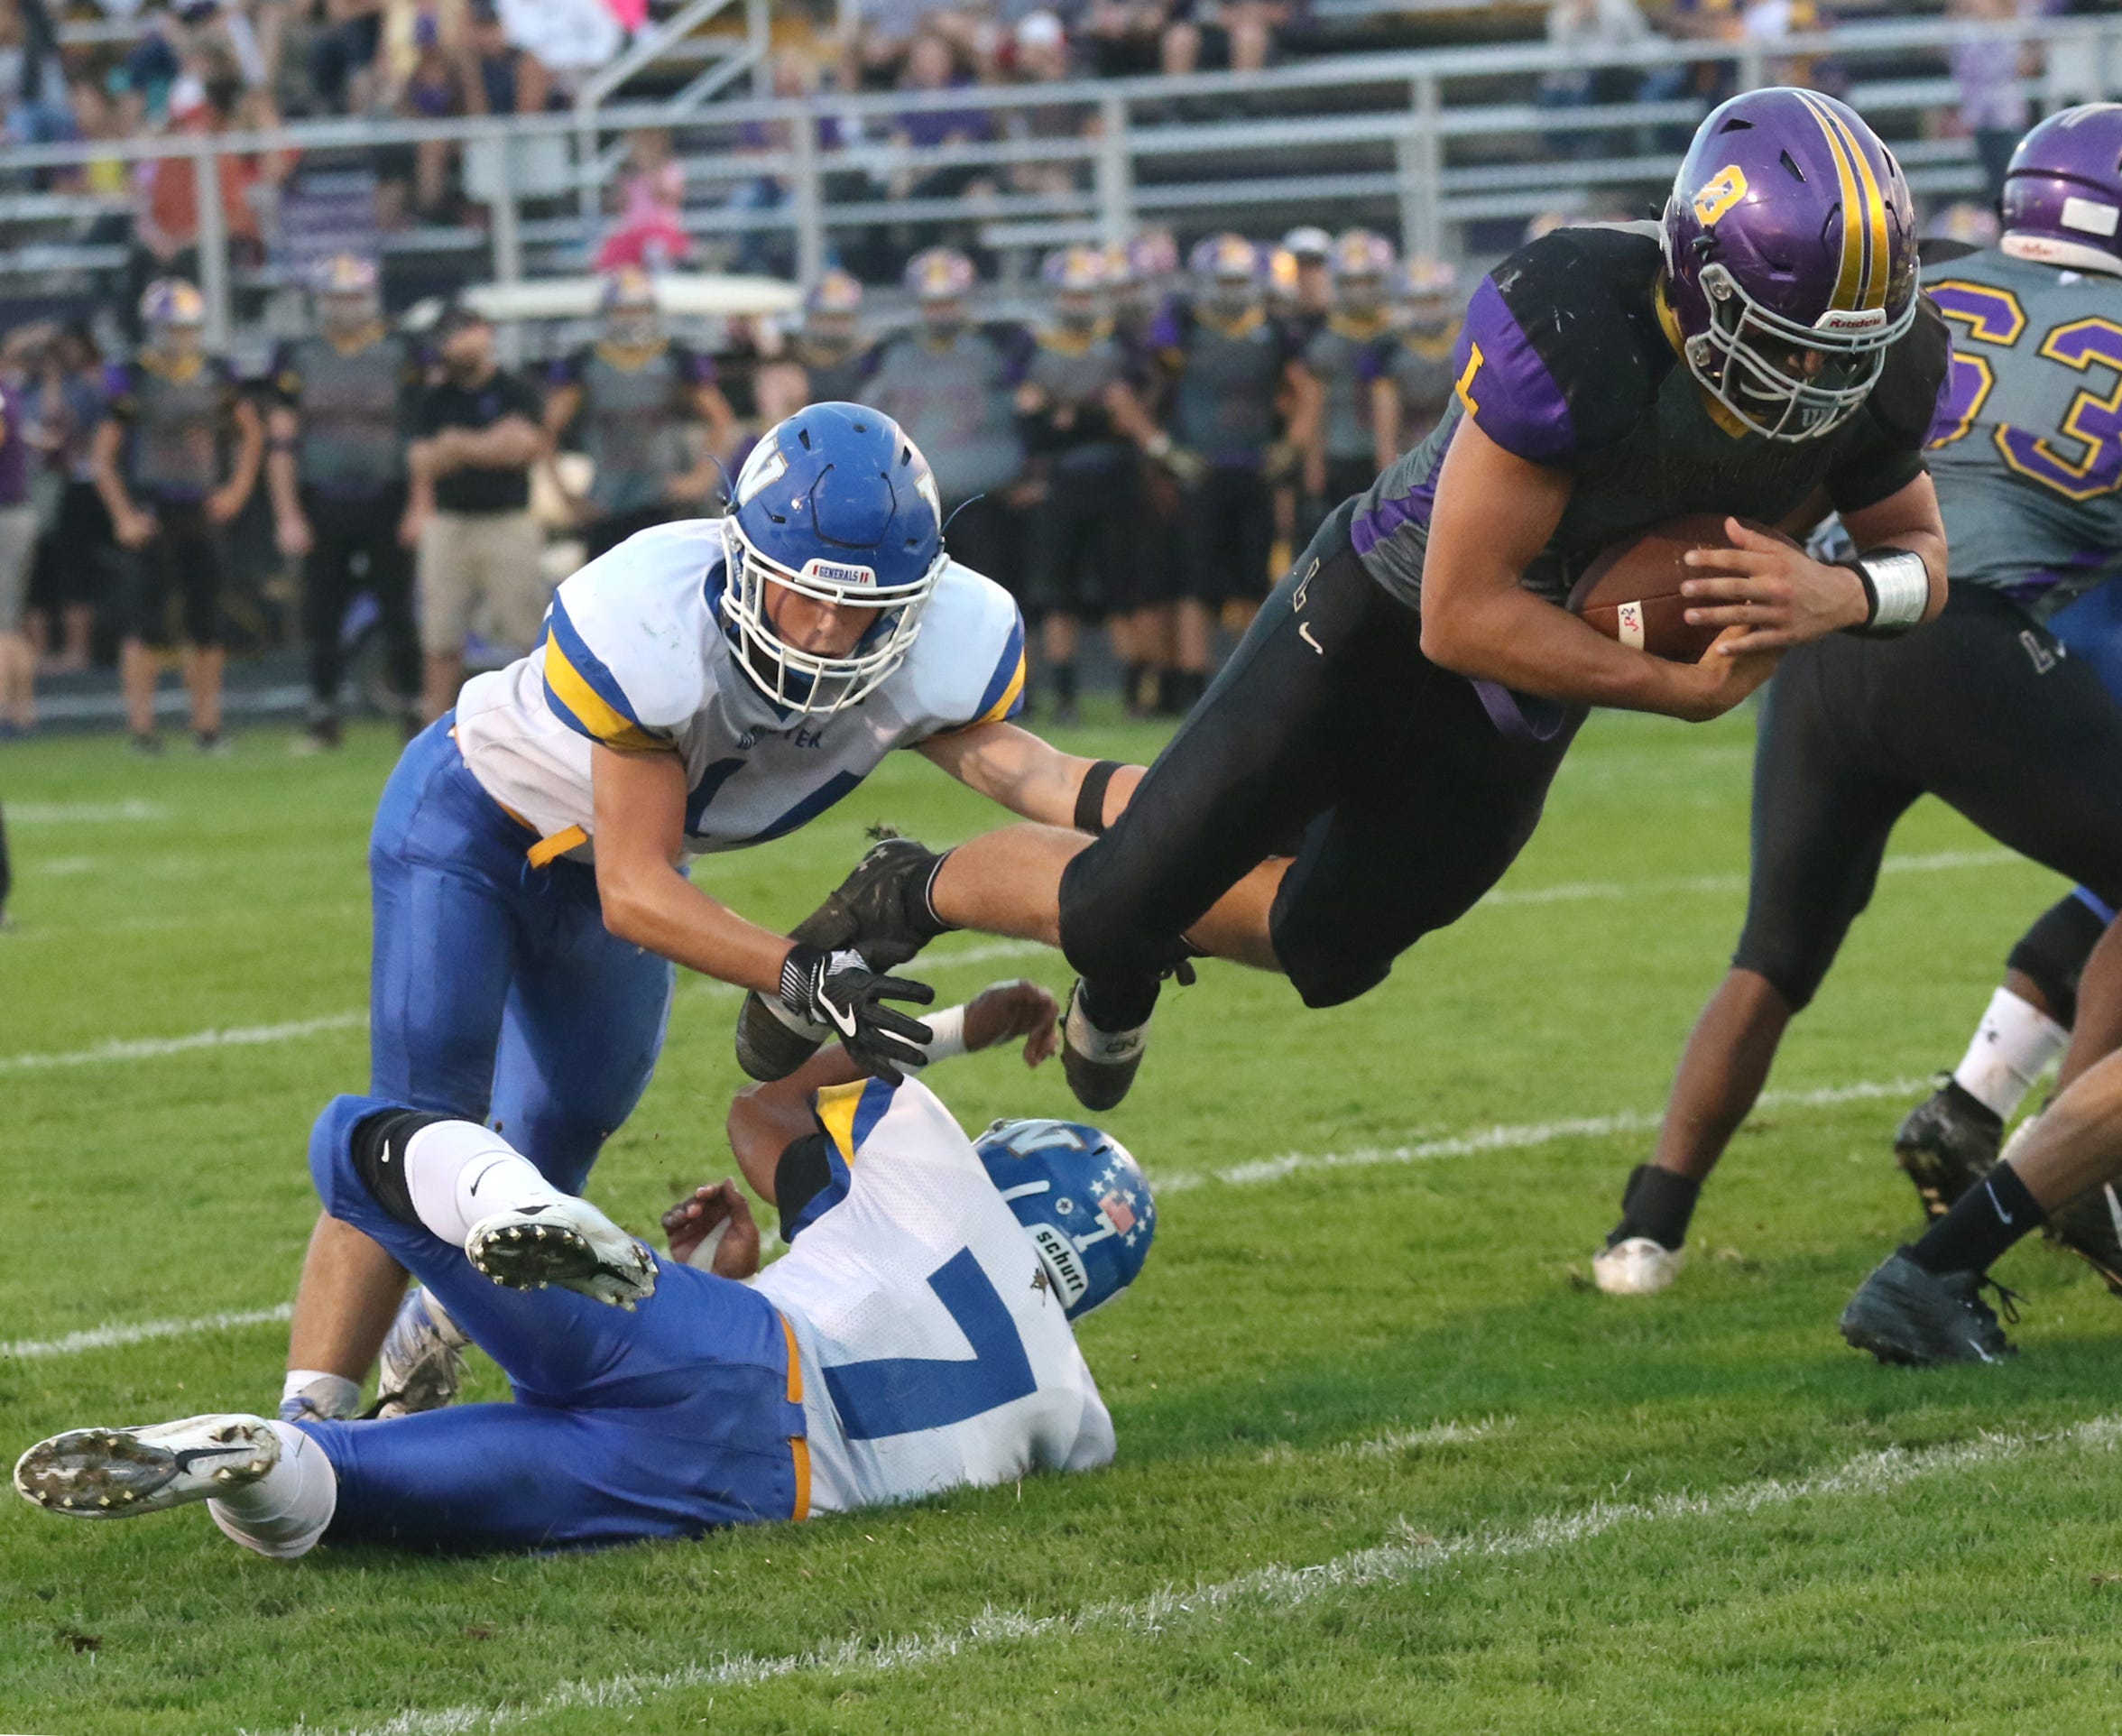 Lexington's Cade Stover slips through the defense to make a touchdown while playing a home game against Wooster earlier in the season.